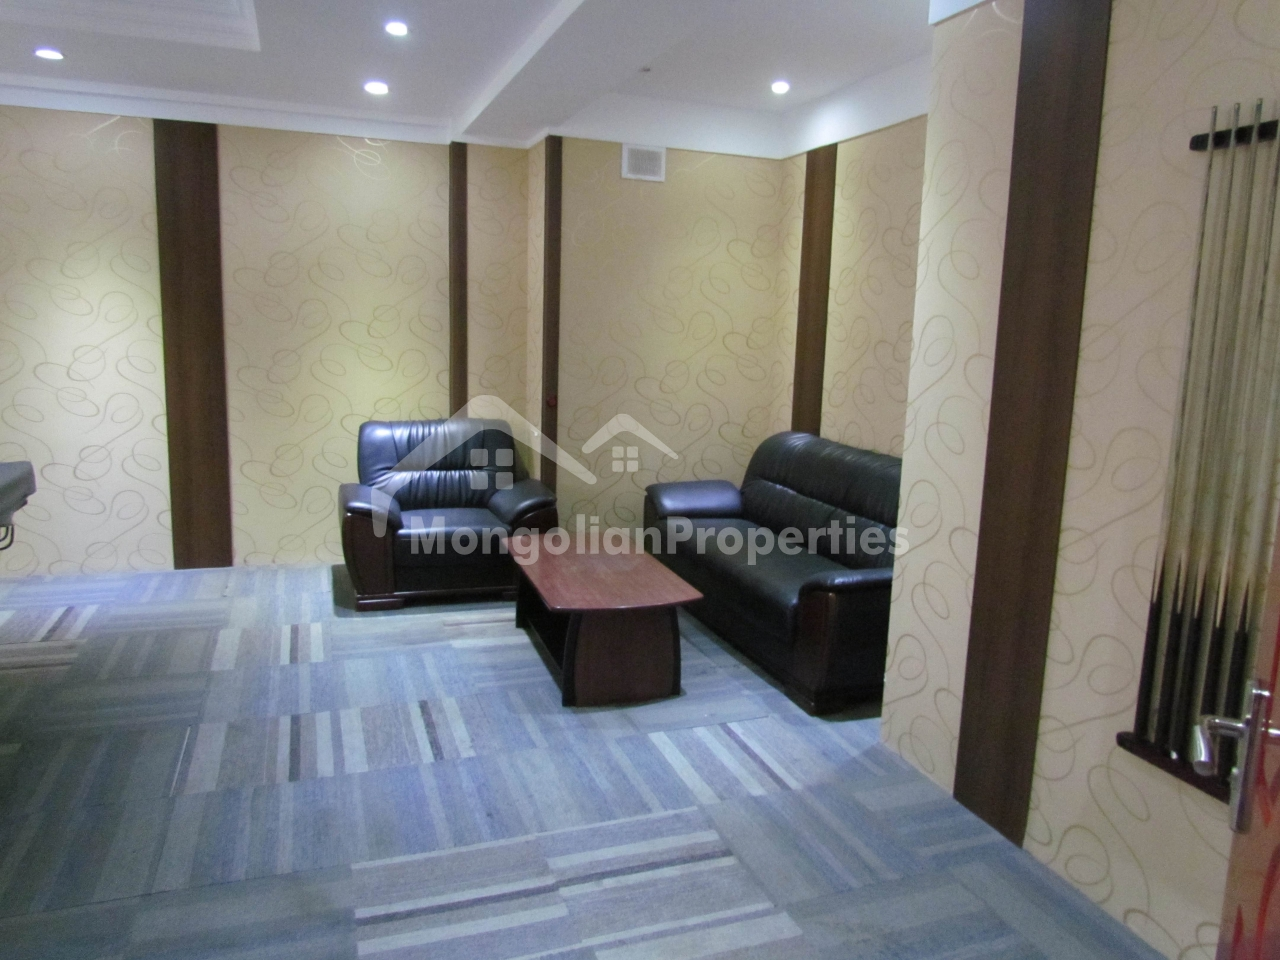 For Sale In Zaisan snooker billiard place for sale